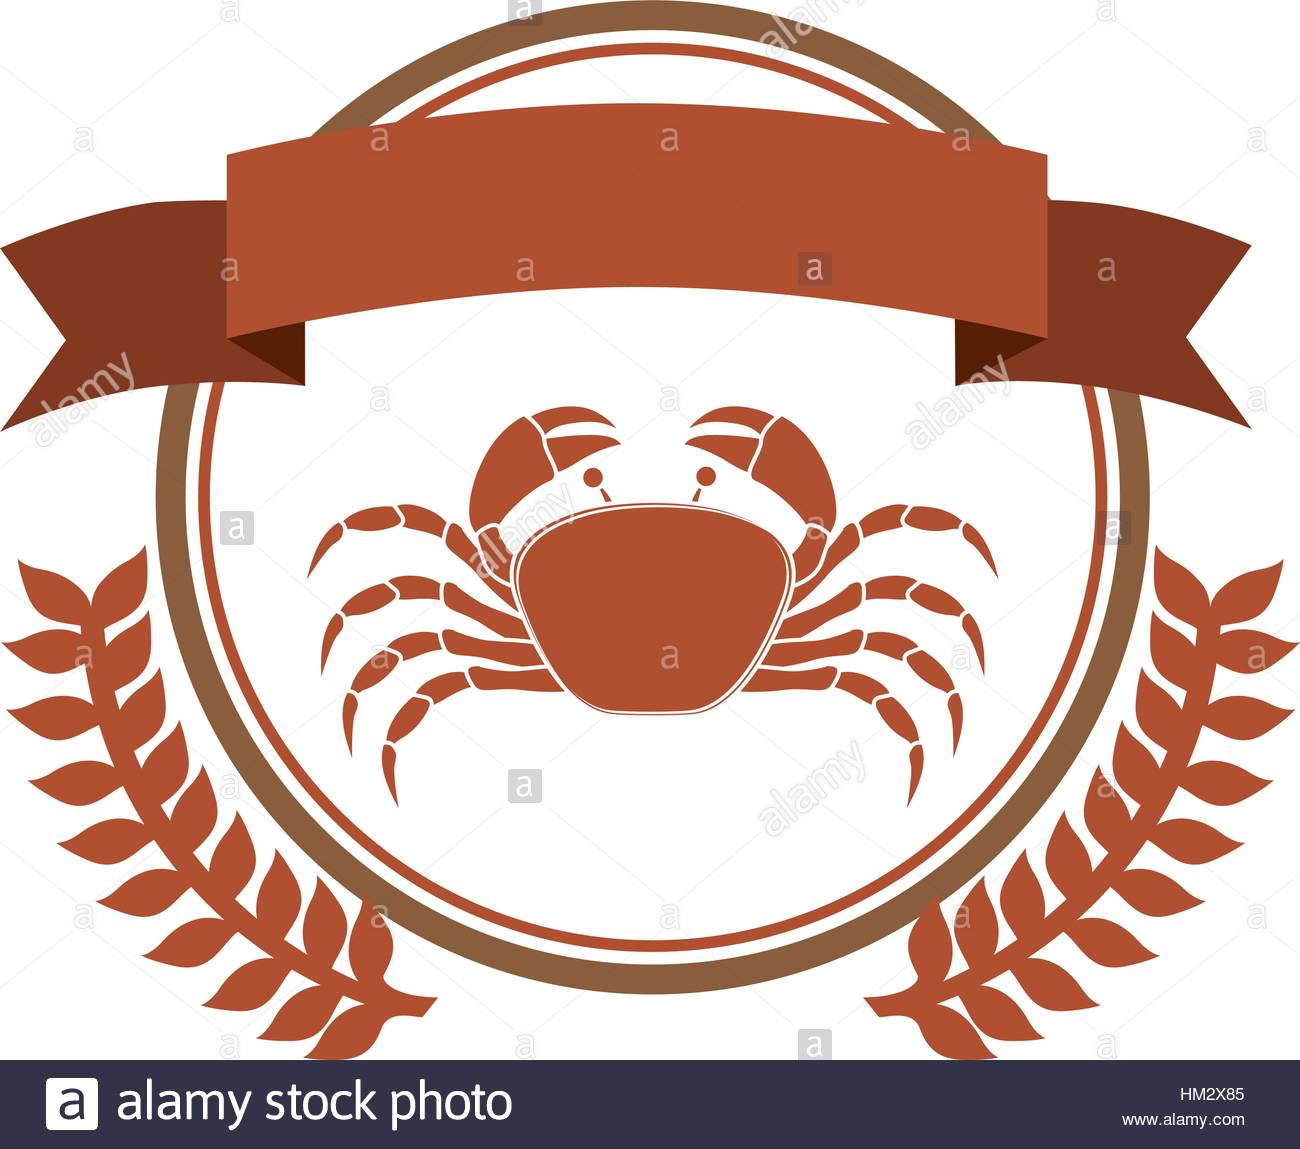 circular border with crown branch with crab and label vector Stock.